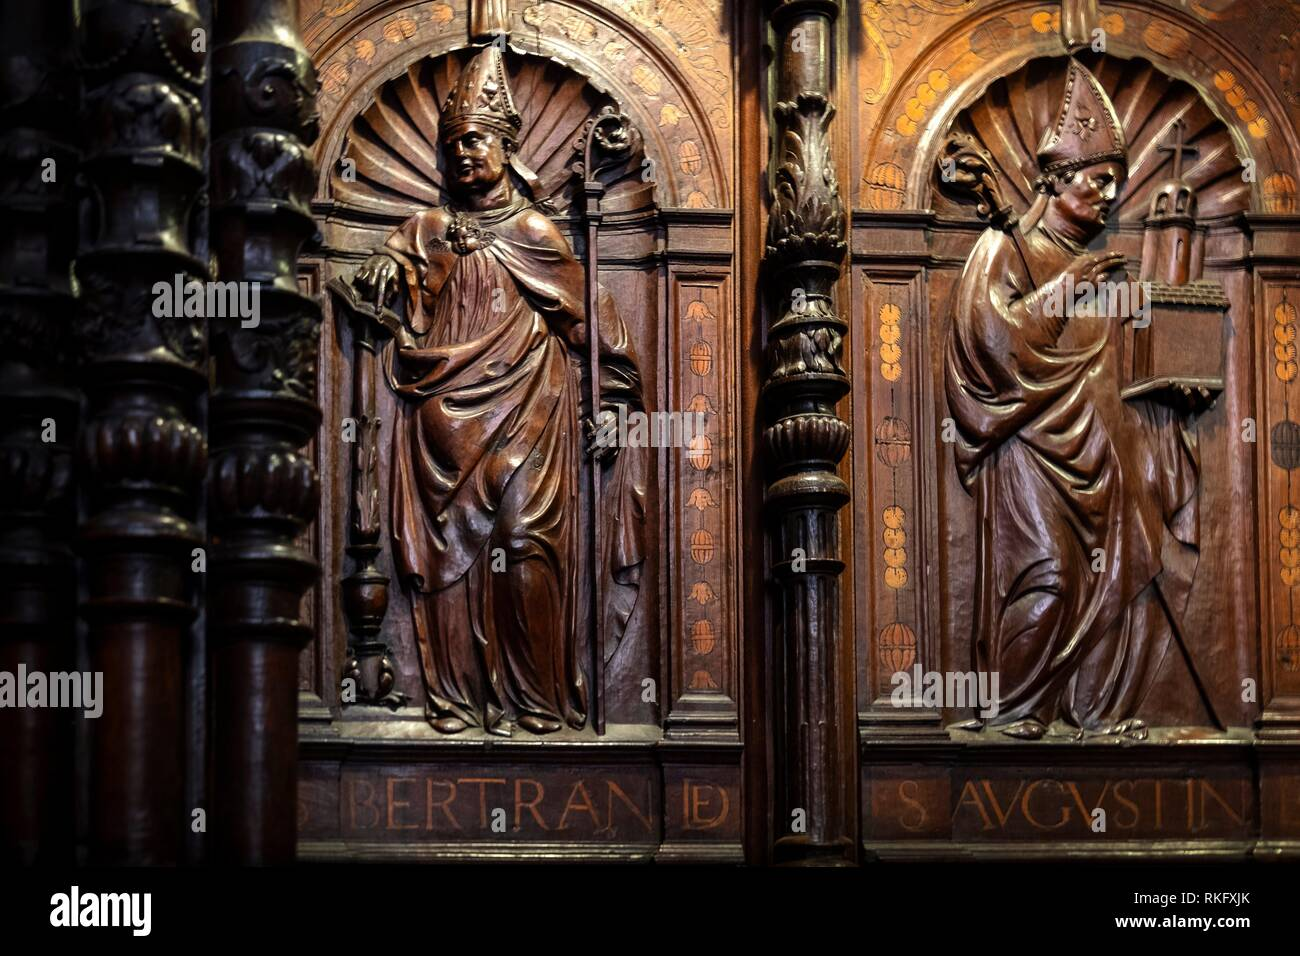 France, Occitanie, Haute Garonne, Choir, Renaissance style, at the Sainte Marie cathedrale, at Saint Bertrand de Comminges. Pilgrimage way to - Stock Image